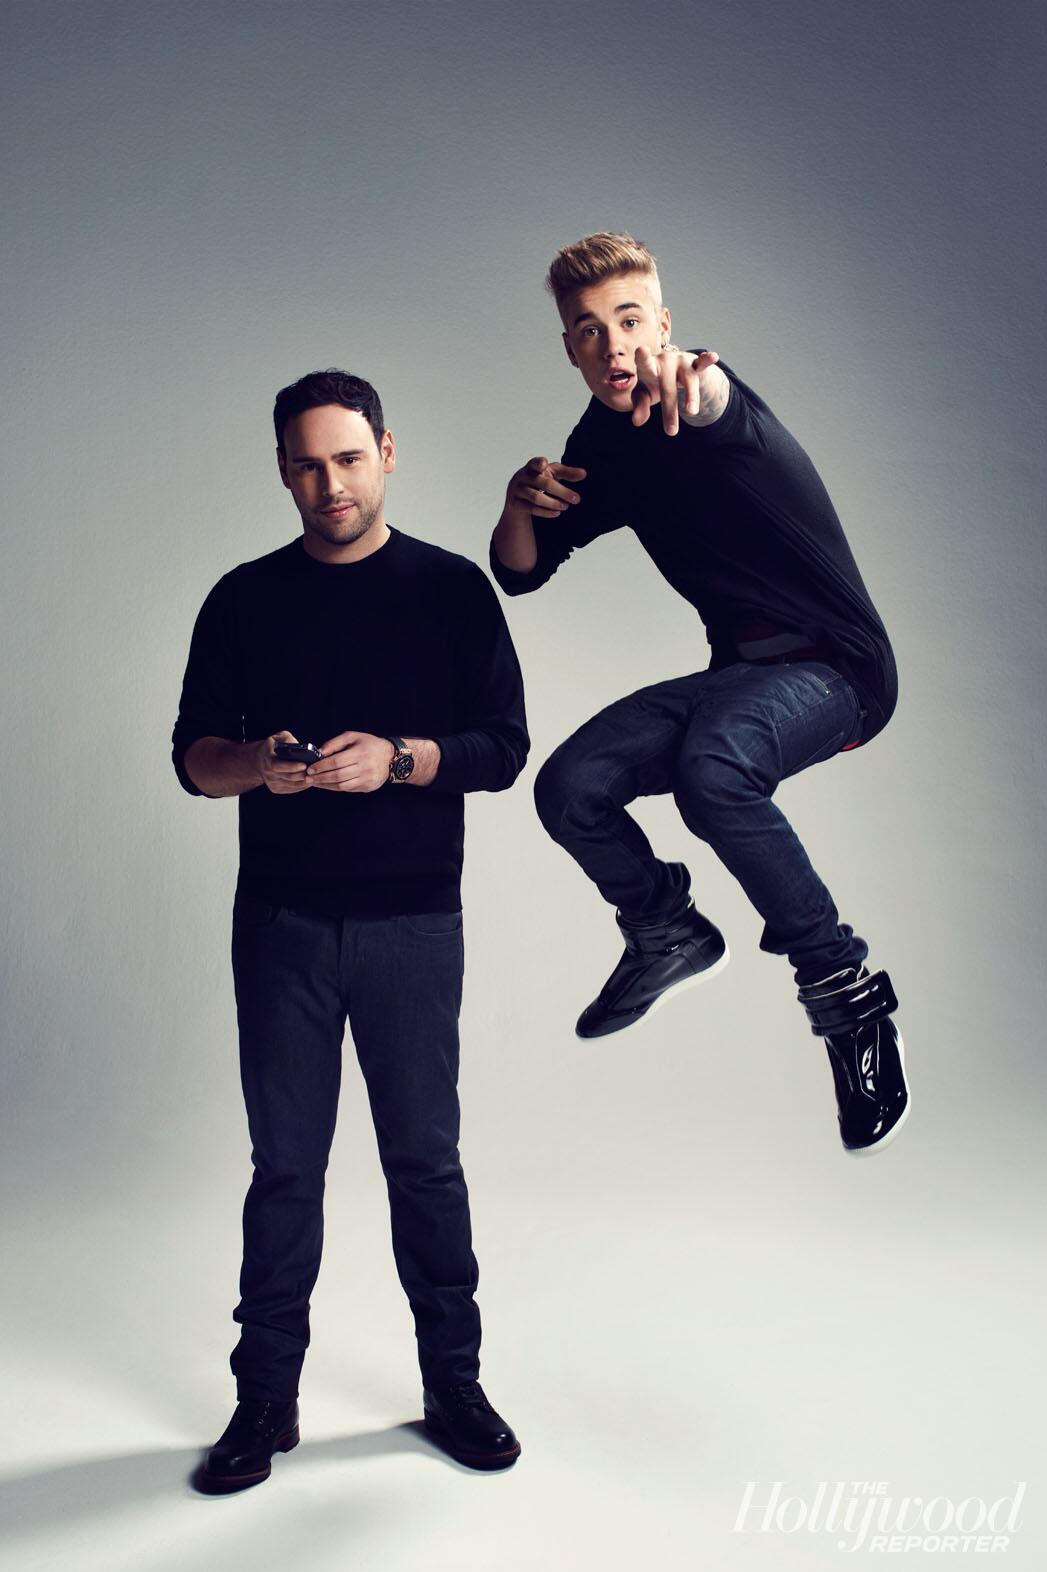 Love this shot of @justinbieber @scooterbraun http://t.co/aeIXeBMSYC